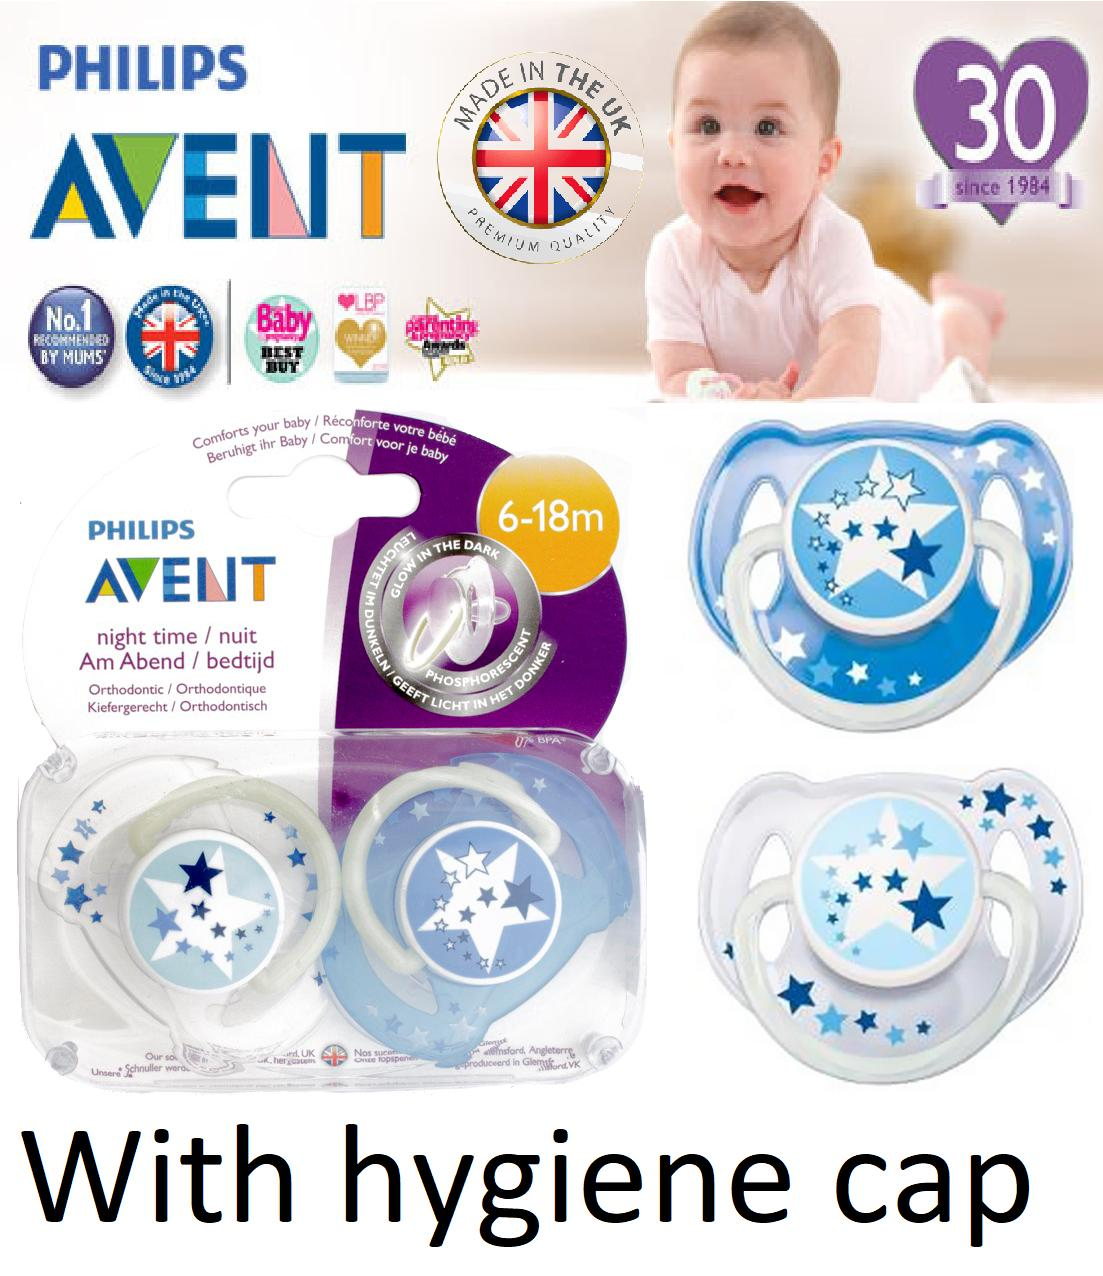 Pacifiers For Sale Baby Online Brands Prices Reviews Philips Avent 2 Pack Orthodentic Pacifier Soother 6 18m Pink Glow In The Dark Dummy Night Time Blue Stars